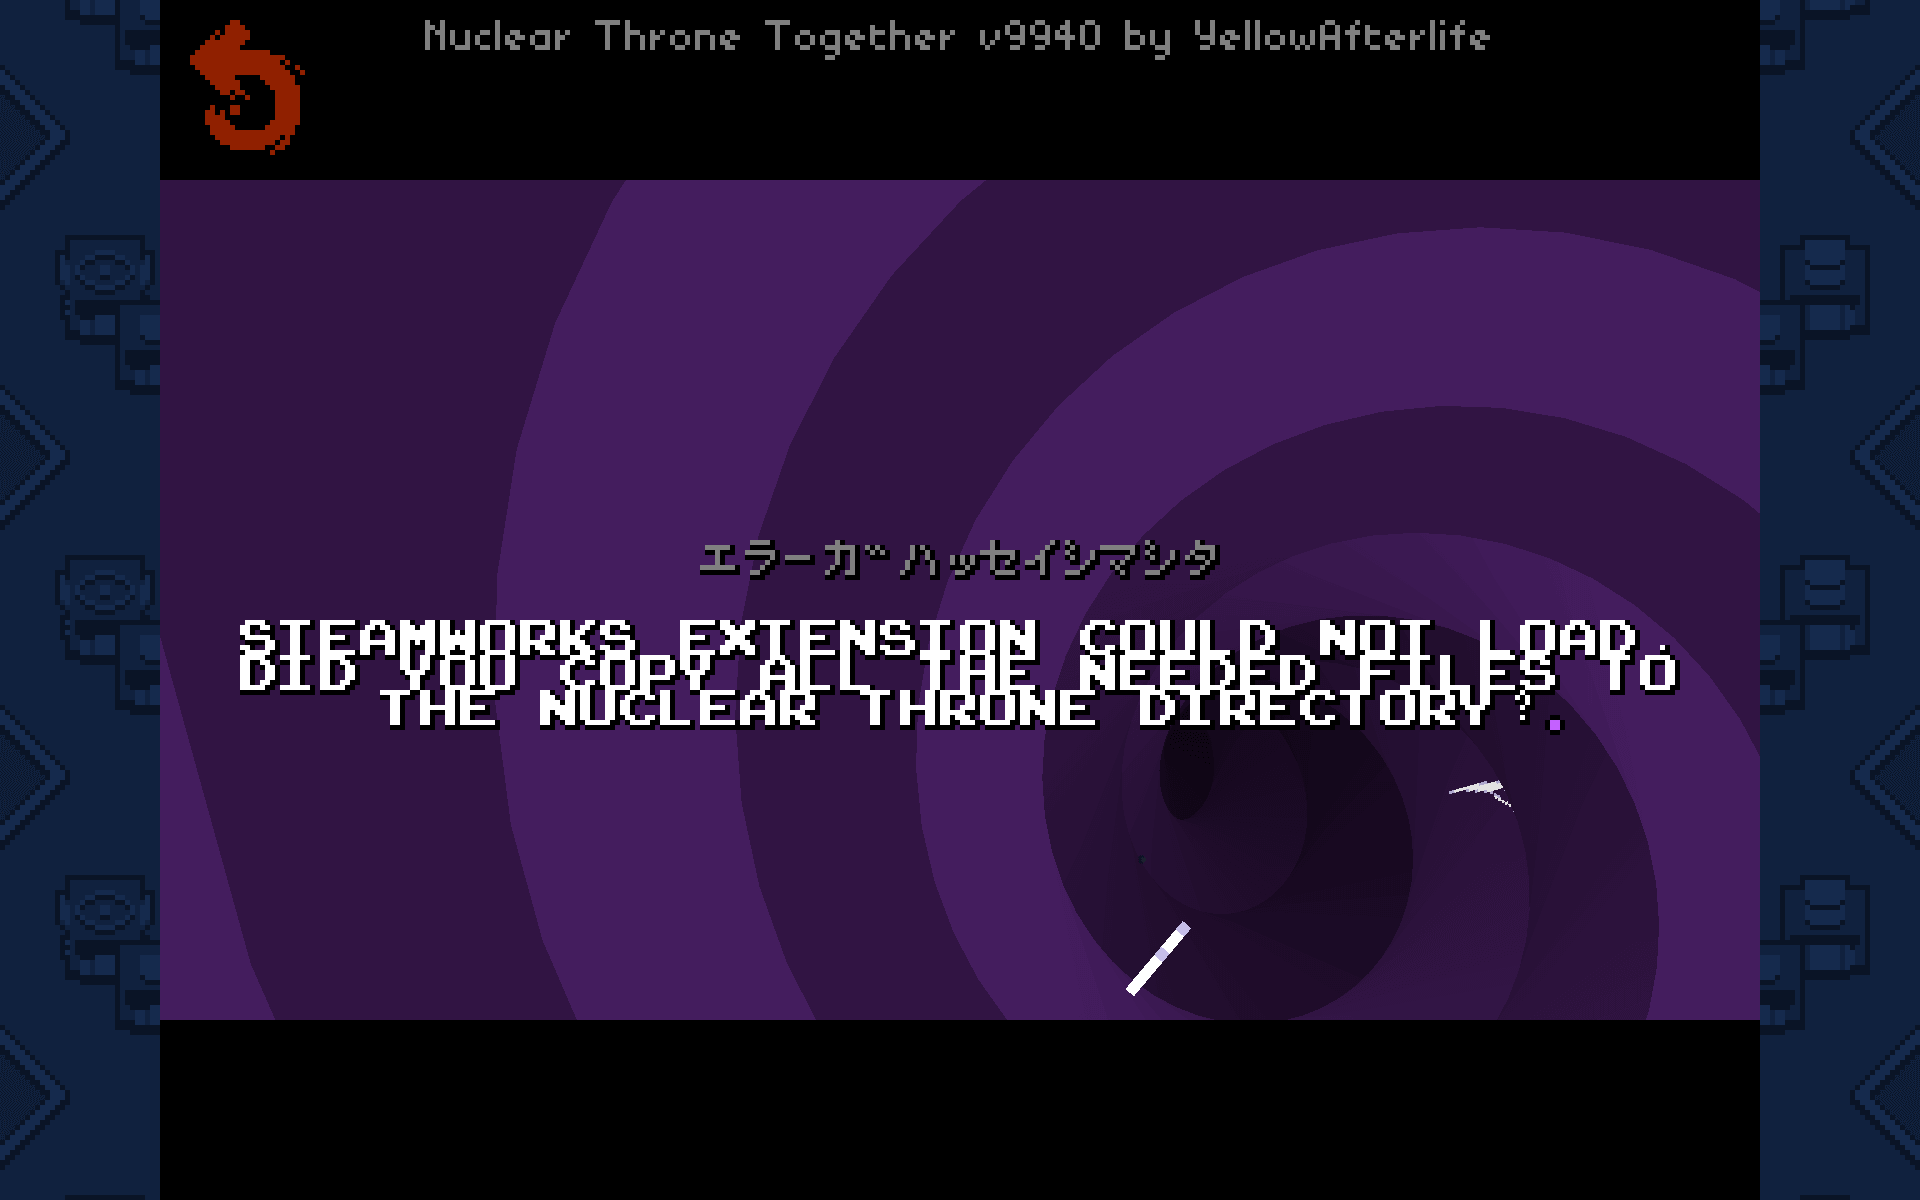 PC ゲーム Nuclear Throne 日本語化とゲームプレイ最適化メモ、Nuclear Throne Together (NTT) Epic 版導入時の注意、マルチプレイオプション Steam 使用不可、Steam マルチエラーメッセージ STEAMWORKS EXTENSION COULD NOT LOAD. DID YOU COPY ALL THE NEEDED FILES TO THE NUCLEAR THRONE DIRECTORY ?